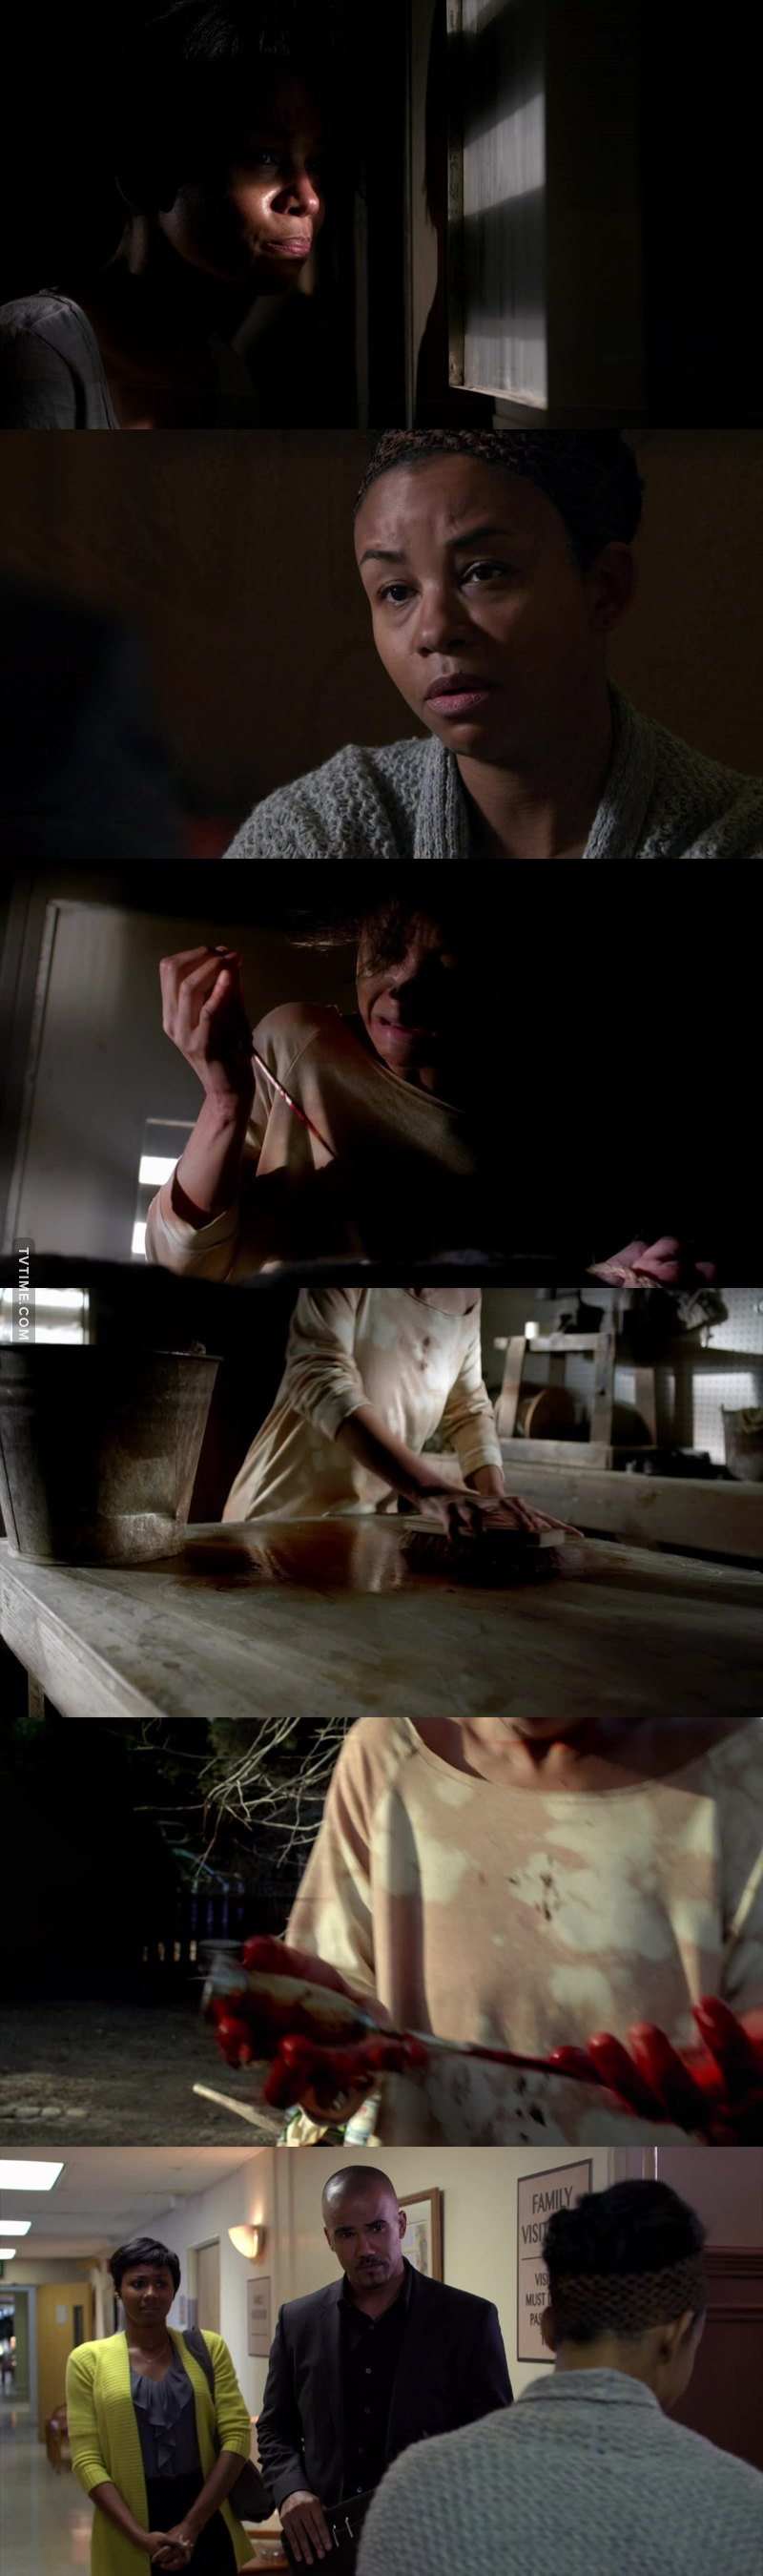 This episode was shocking 😲 I thought she was an innocent victim, I did not think she was the partner😨